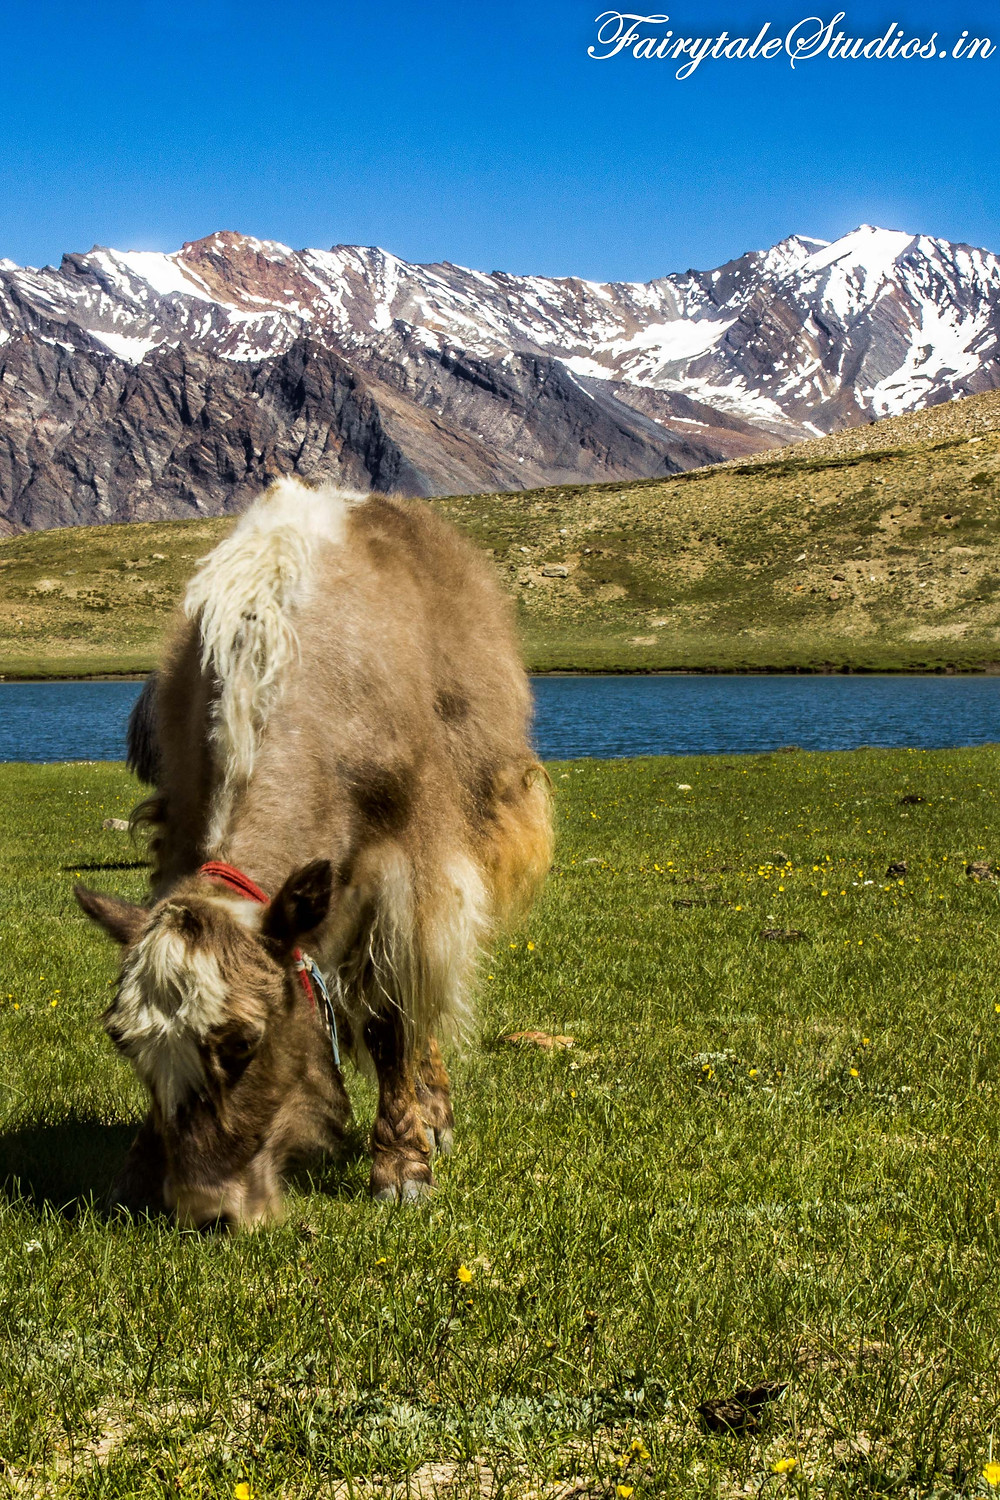 A cow grazing near one of the lakes at Penzila pass (The Zanskar Odyssey Travelogue)